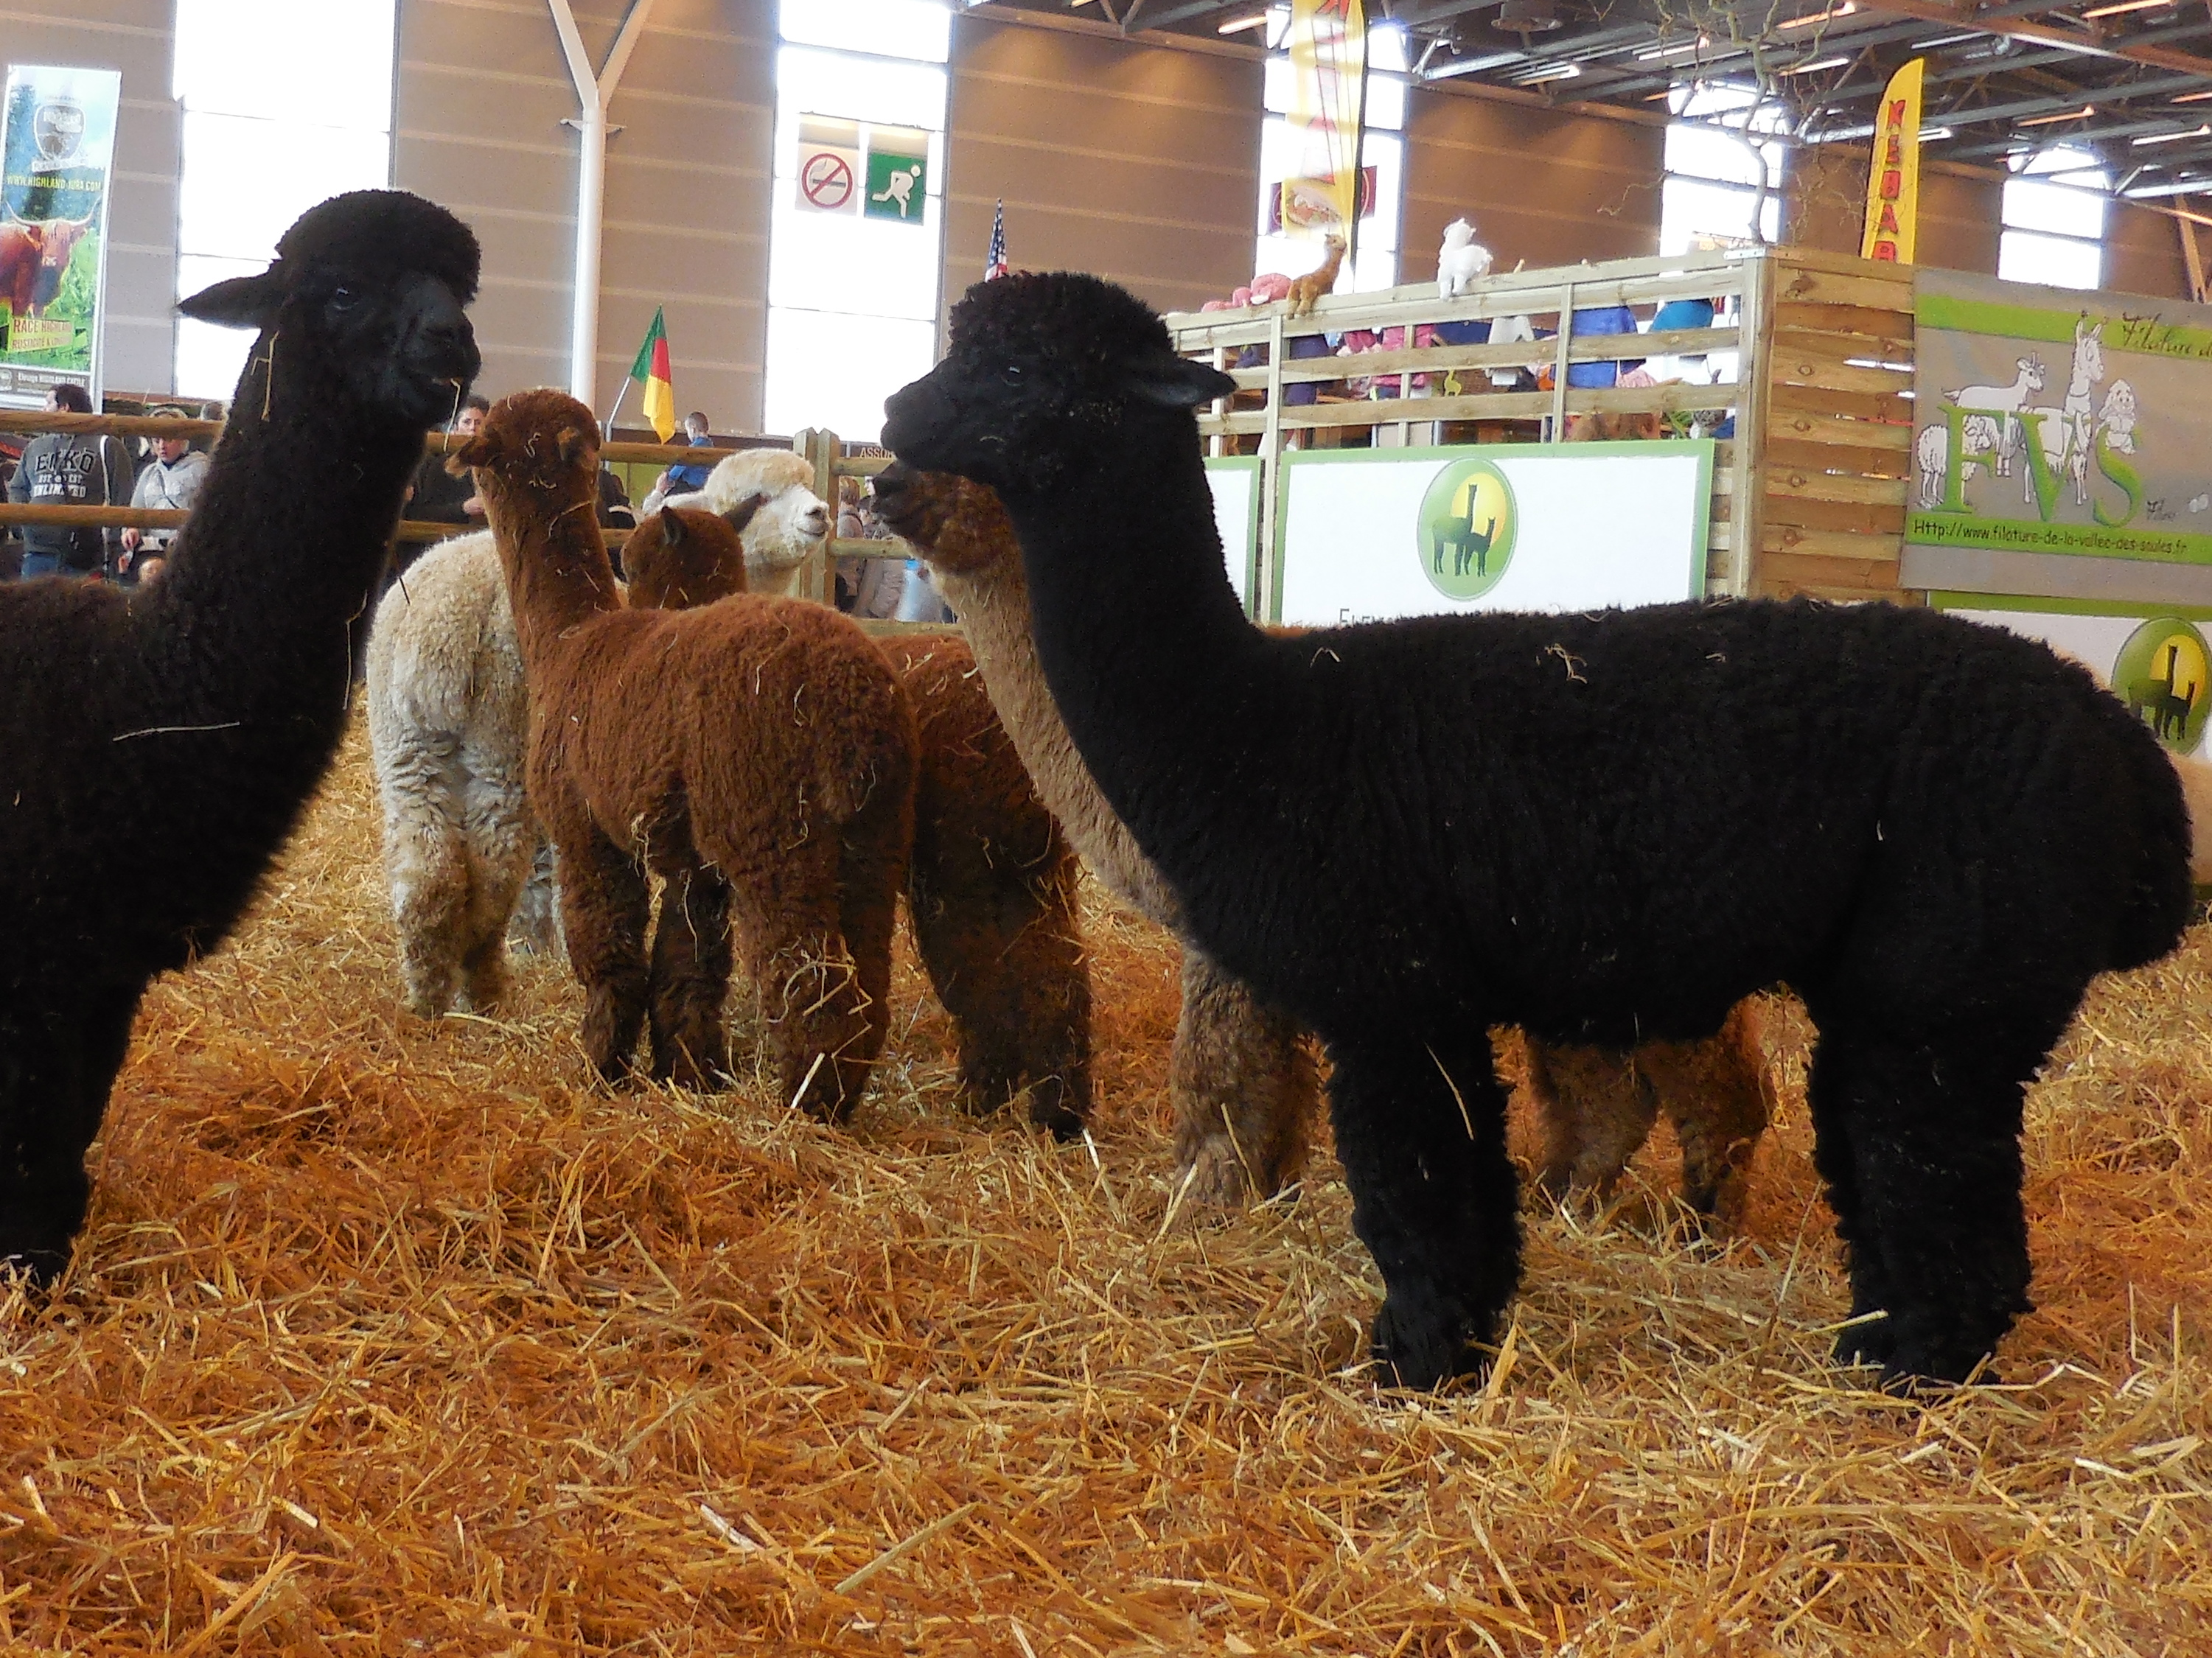 Alpacas are smaller, fluffier, and less aloof-appearing than the llamas who live with my sister Nancy. >> All the animals were groomed to a fare-thee-well.